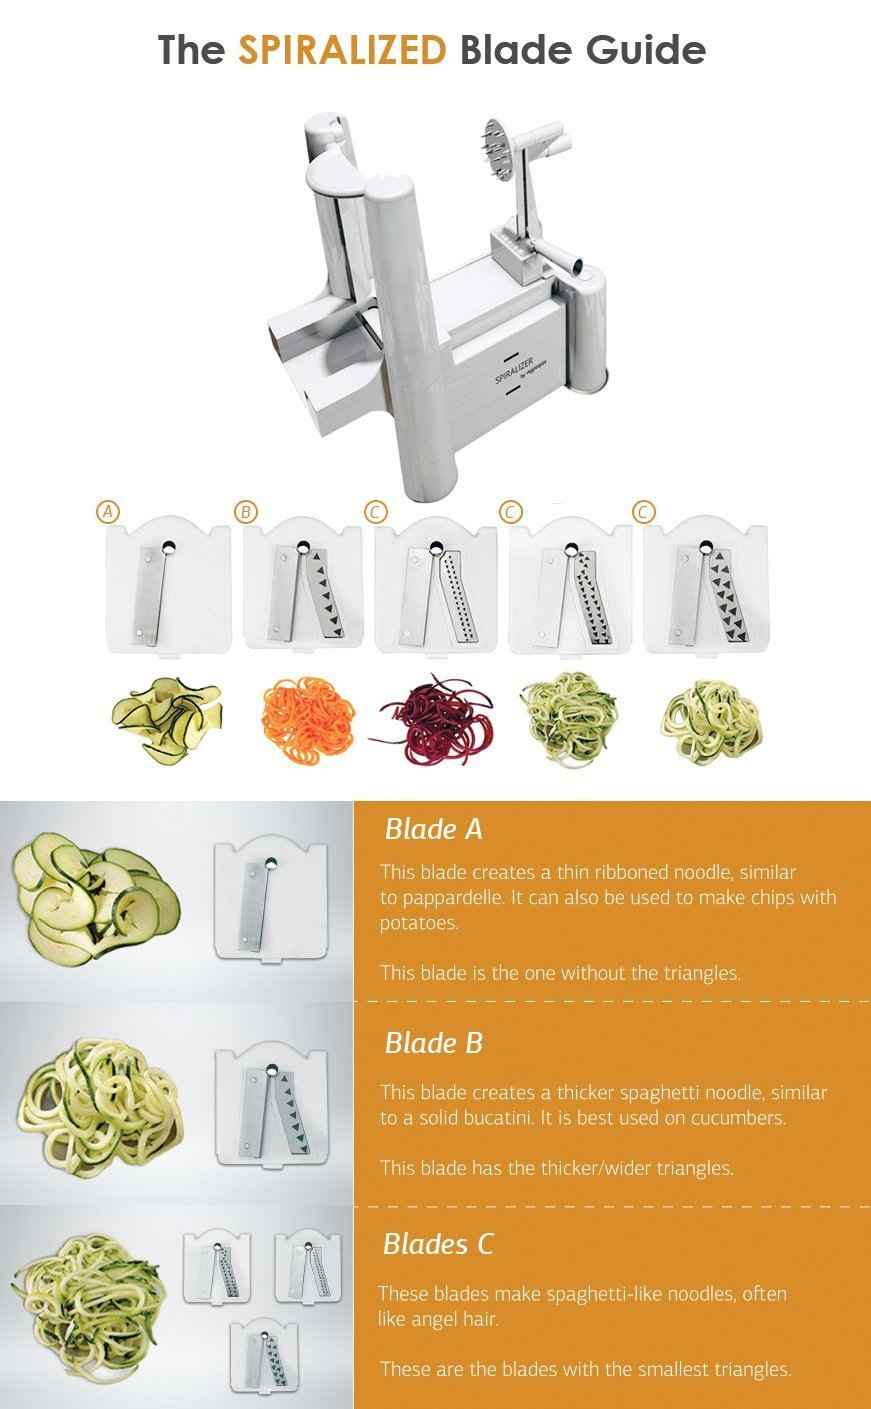 5 Blade Spiralizer - Spiral Slicer, Vegetable Maker, Shredder ! Makes Zucchini Noodles, Veggie Spaghetti, Pasta, and Cut Vegetables in Minutes. Includes Blade Storage Box! by Veggiespize (Image #9)